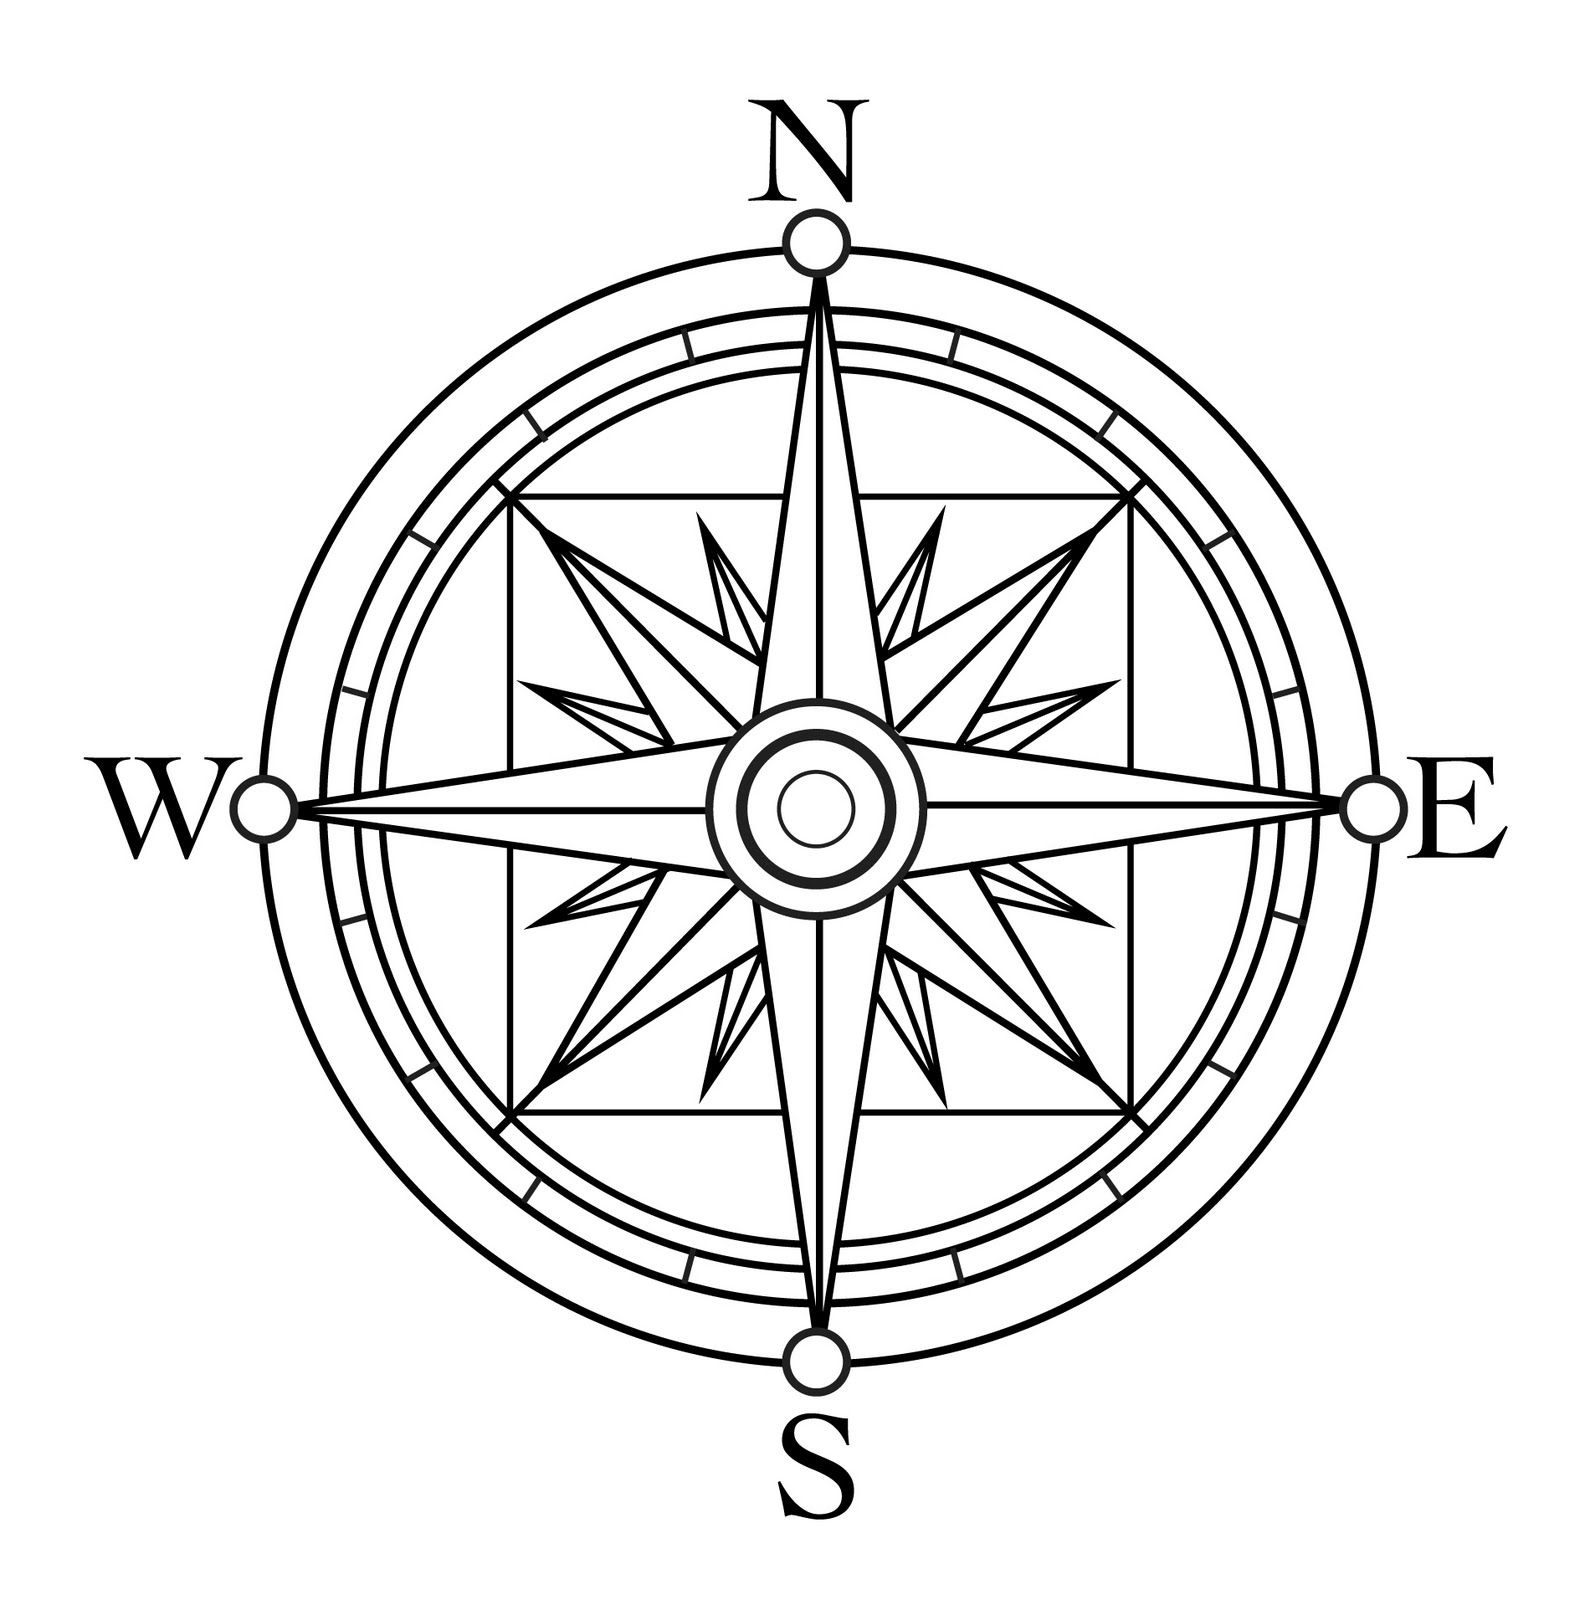 1590x1600 Clip Art Compass Rose And One Variation In Color In Case You'D